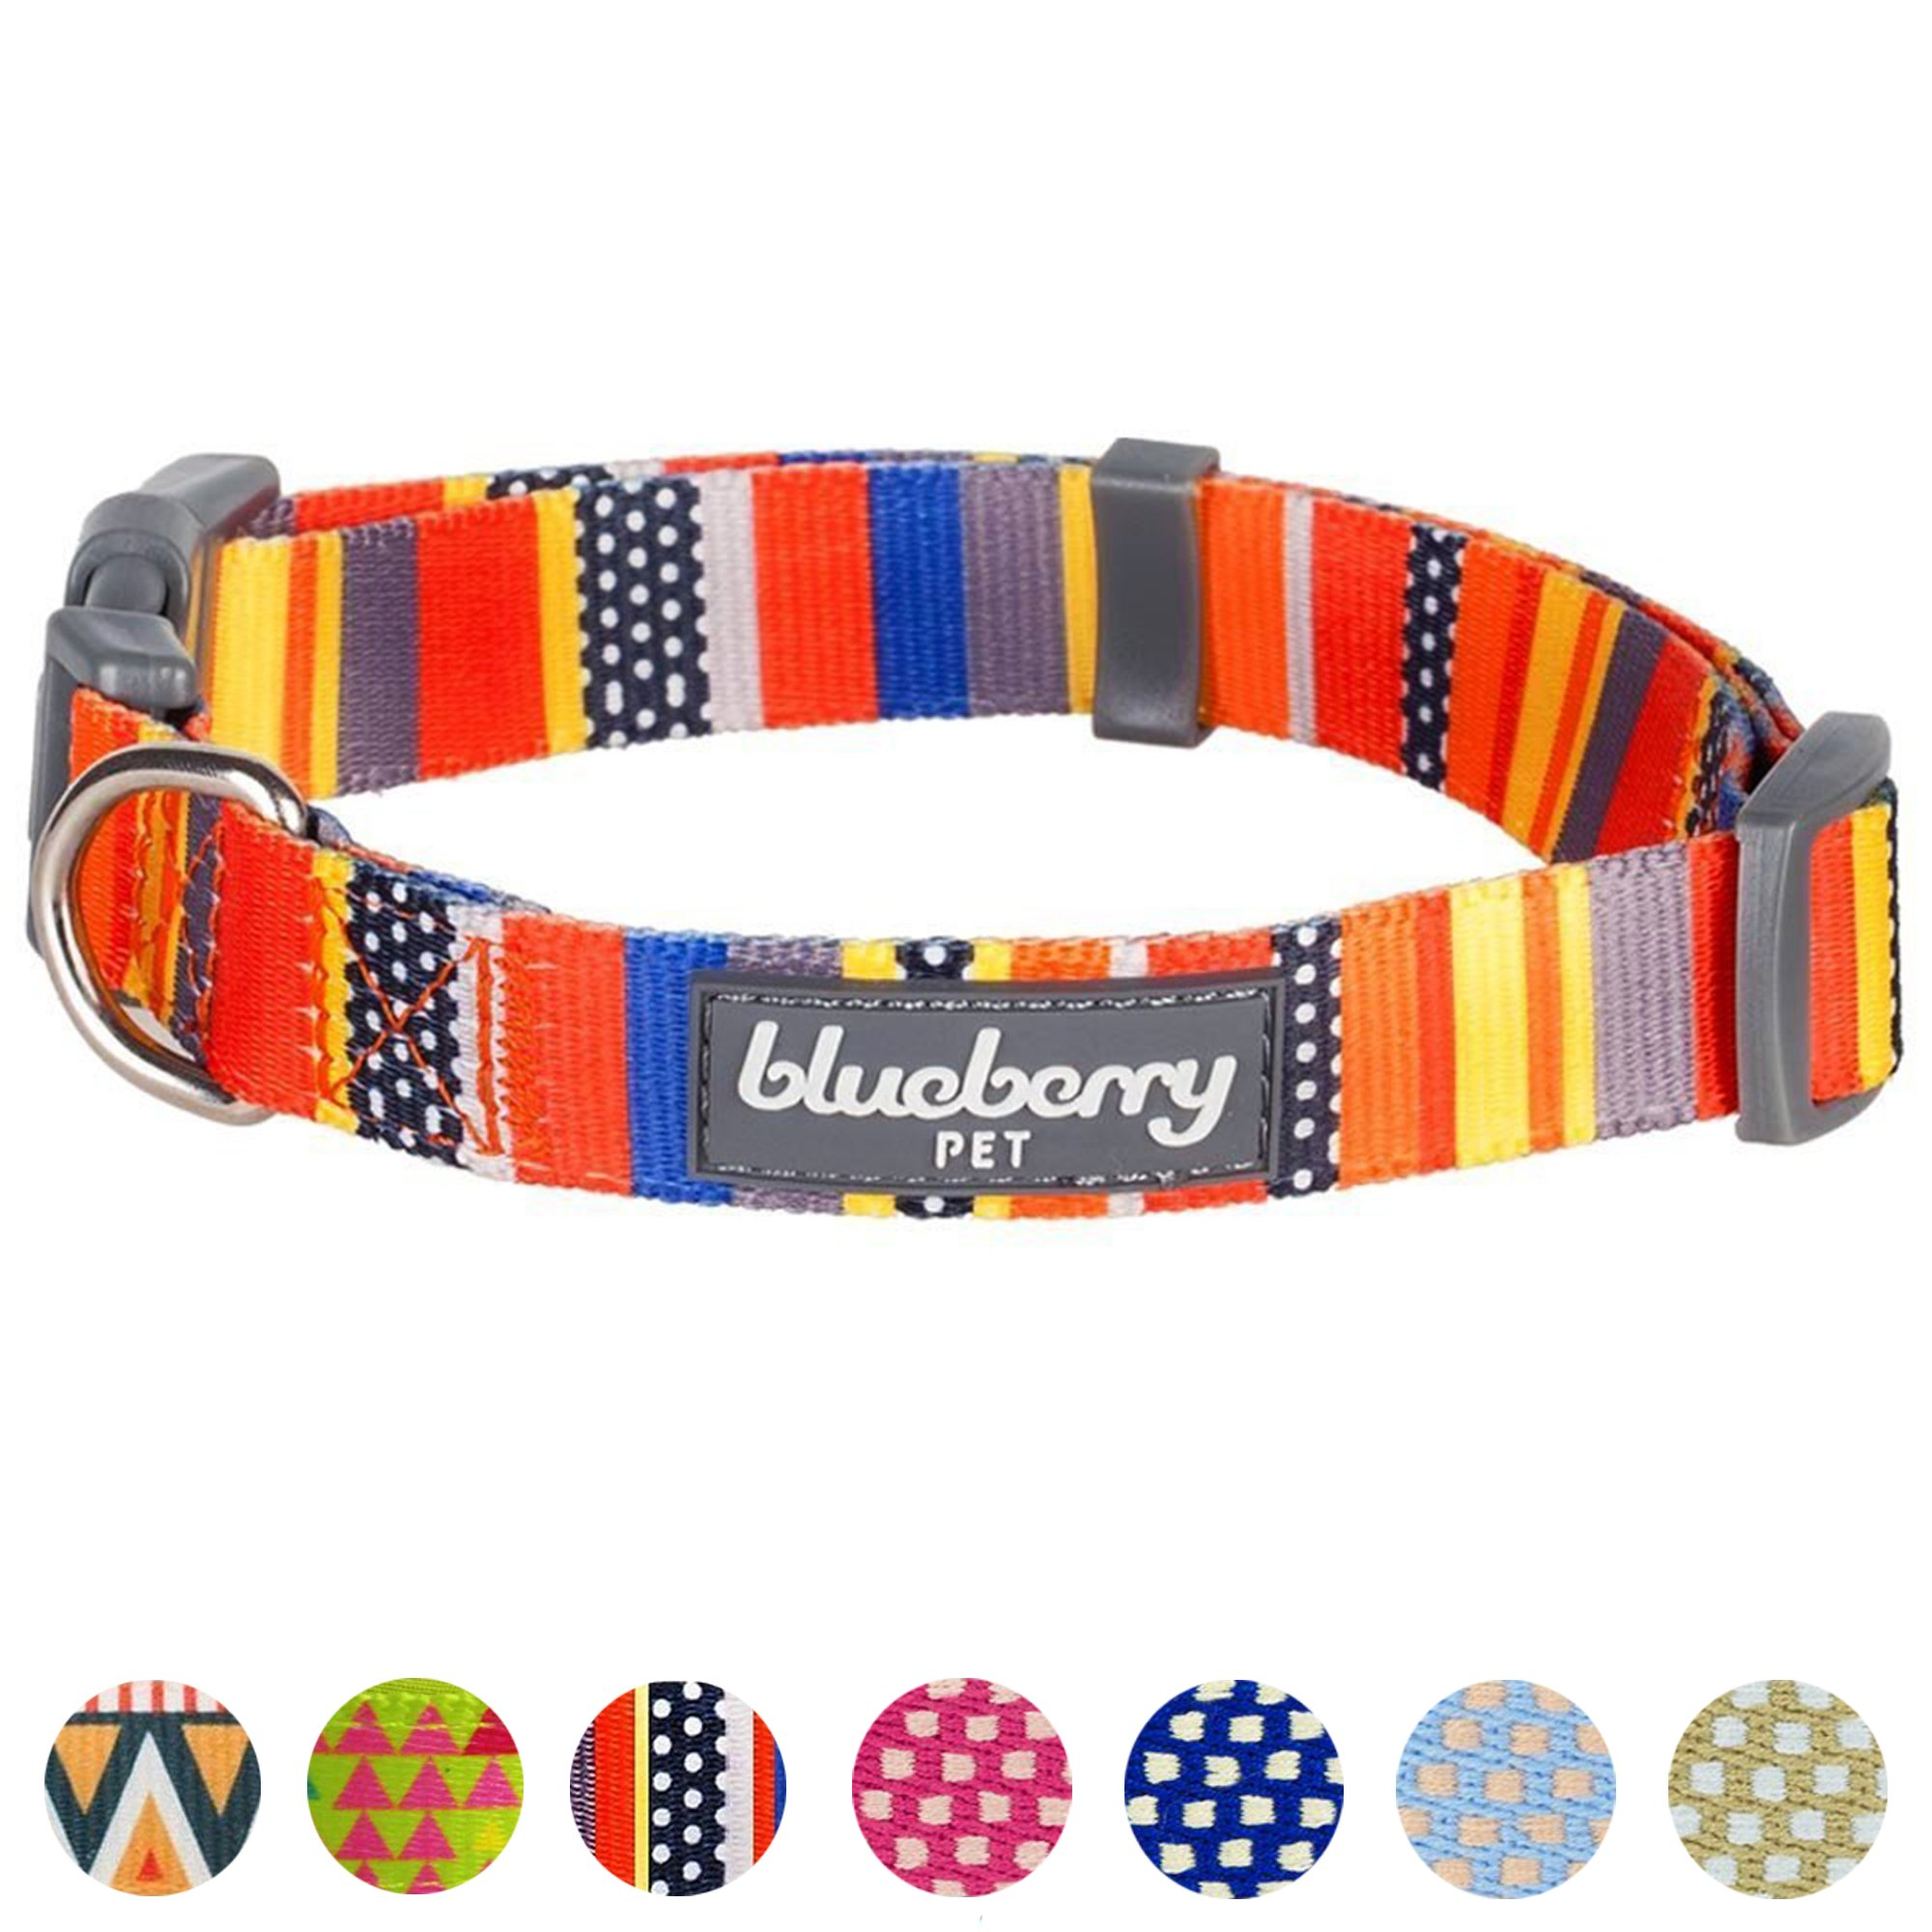 Blueberry Pet 8 Patterns Nautical Flags Inspired Designer Basic Dog Collar, Neck 14.5''-20'', Medium, Adjustable Collars for Dogs